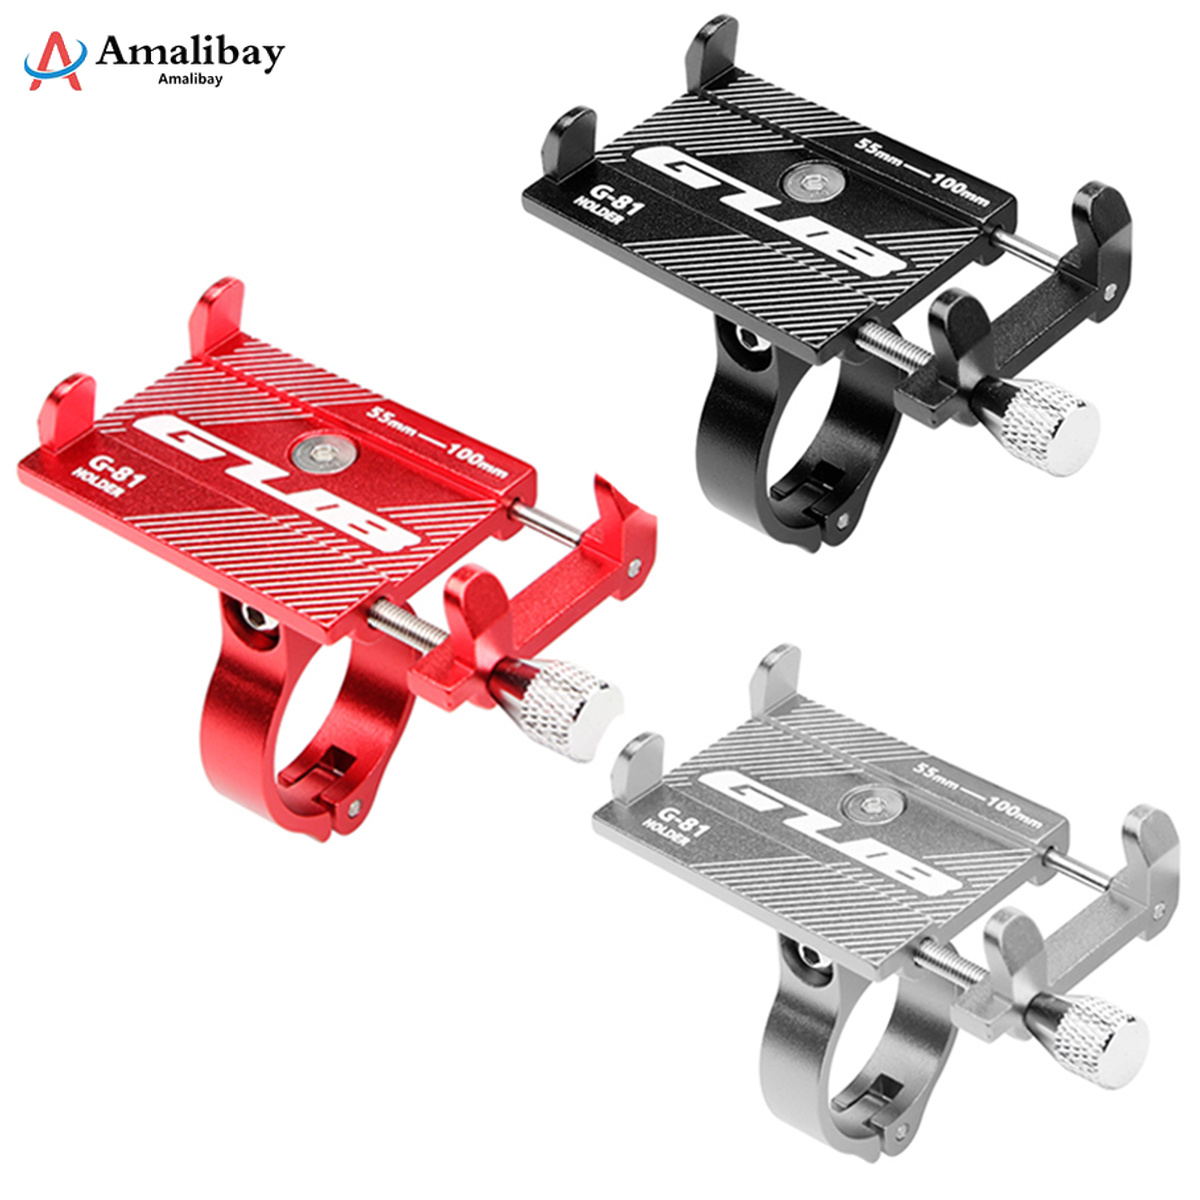 Xiaomi M365 Adjustable Anti-Slip Mobile Phone Stand Holder M365 Pro Electric Scooter Qicycle EF1 Handlebar Mount Bracket Rack